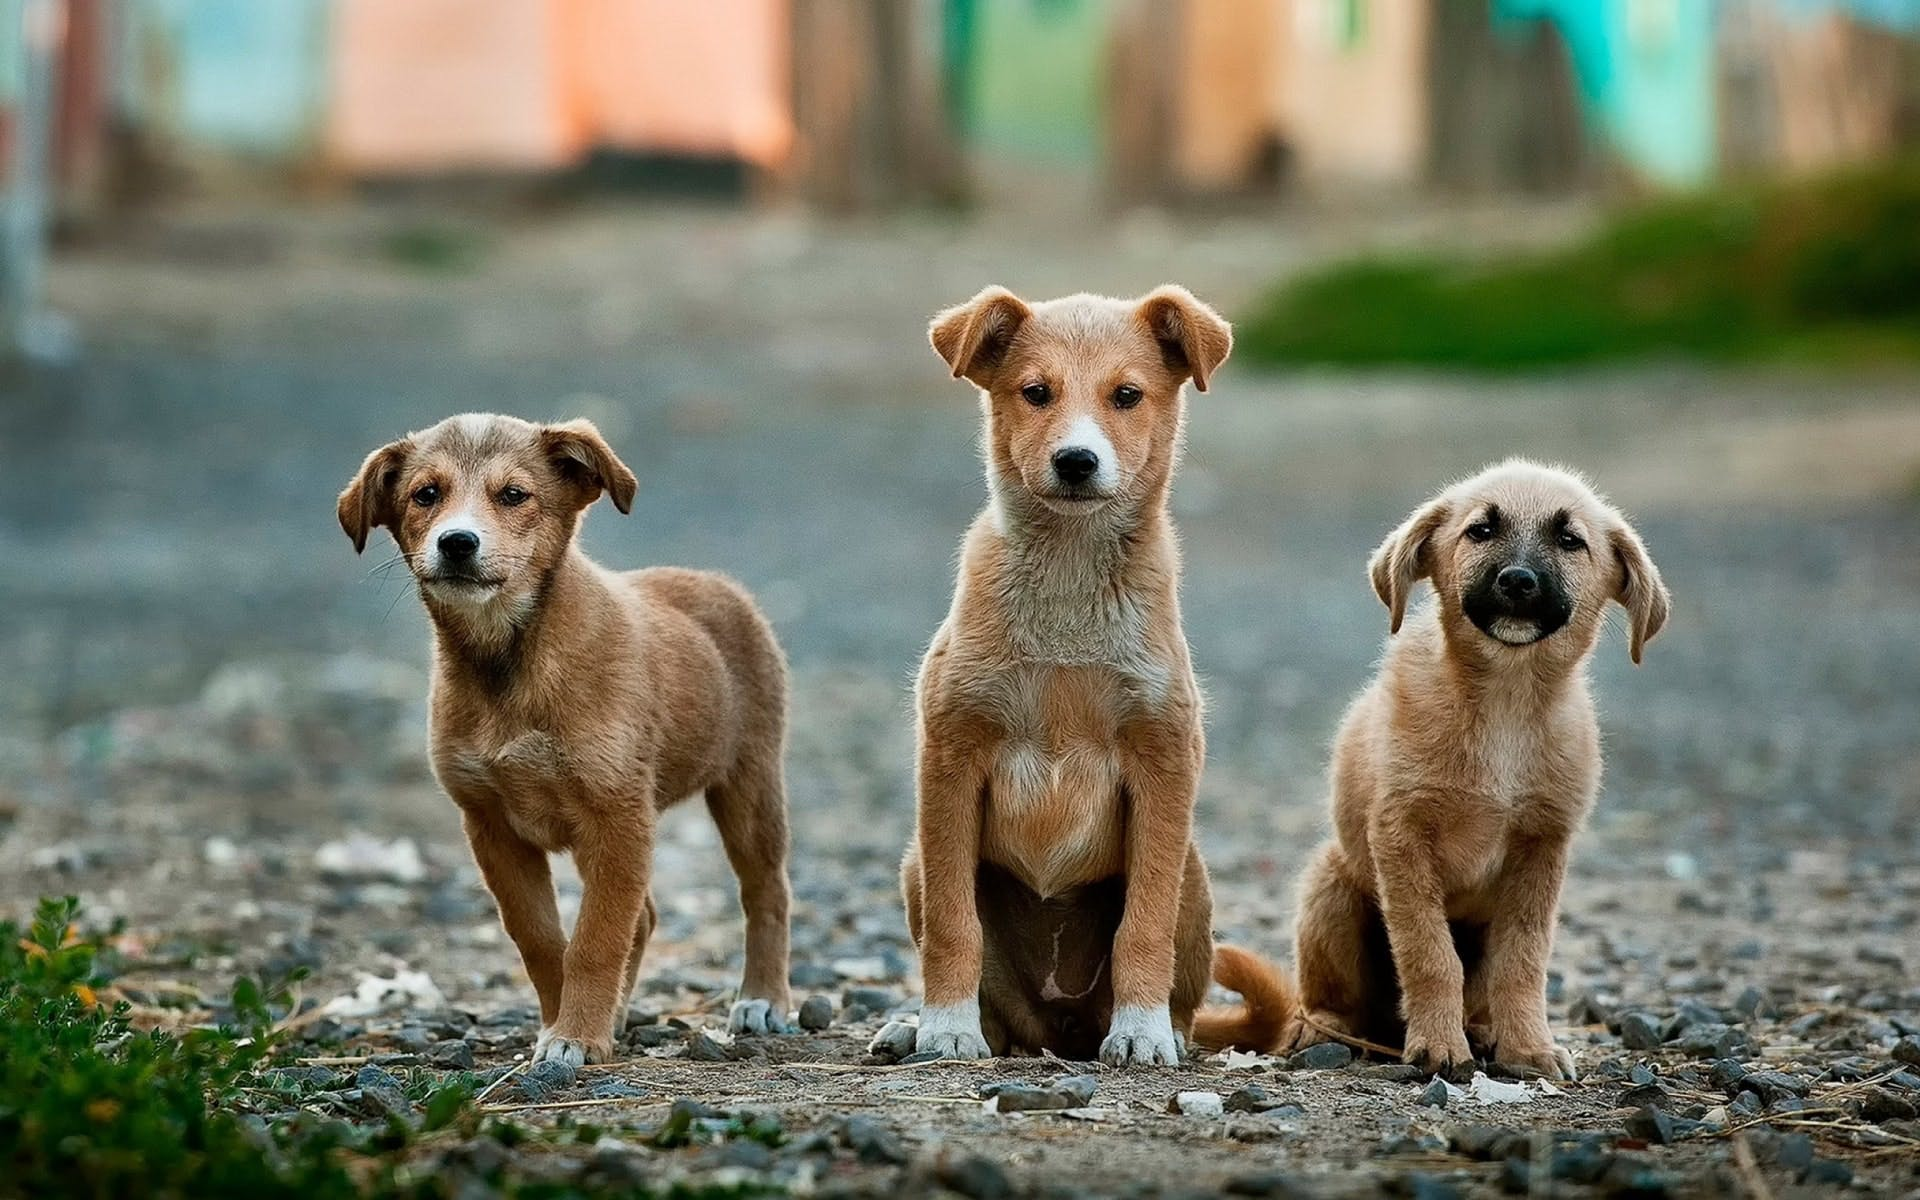 daily-wag-how-common-is-rabies-among-stray-dogs-in-the-us-hero-image